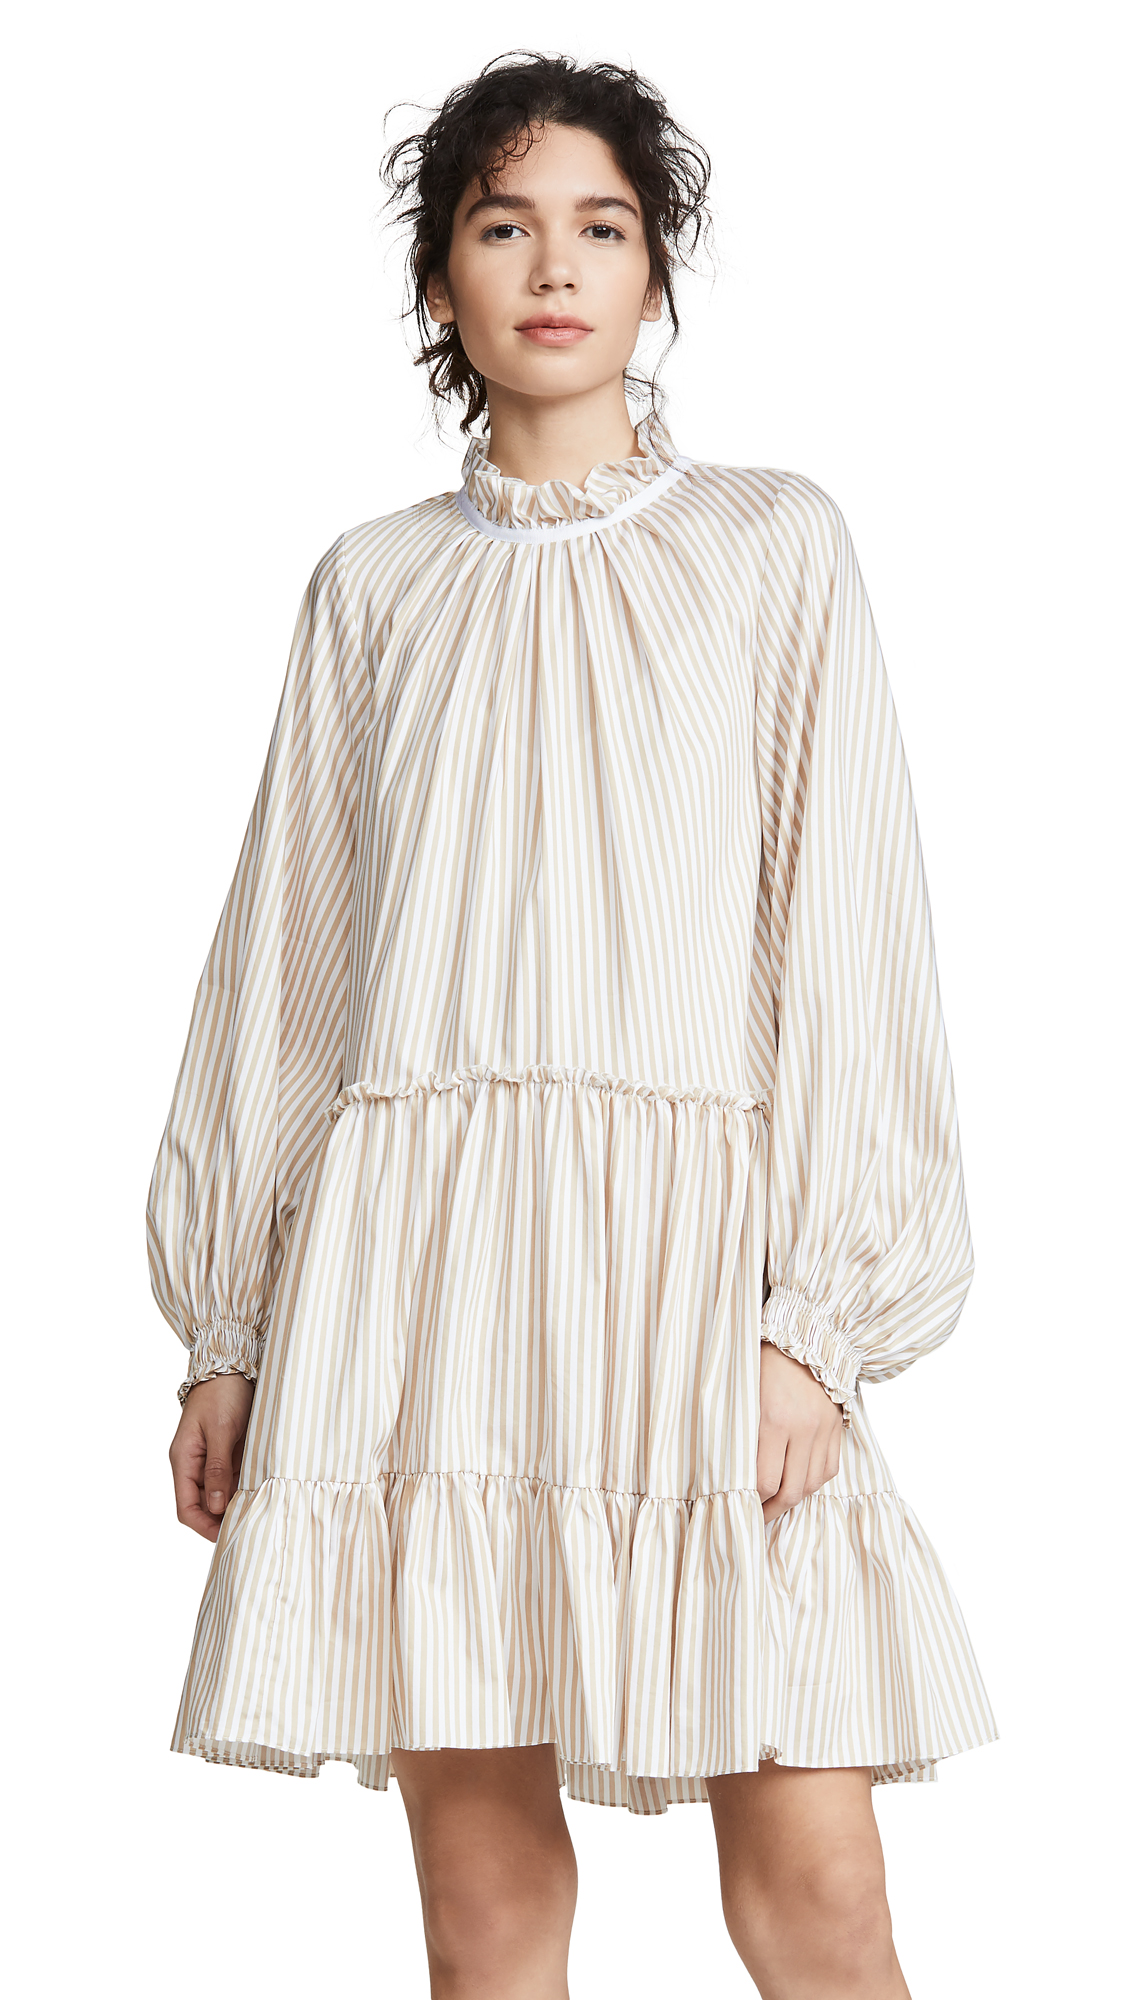 3.1 Phillip Lim Striped Dress - Khaki/White